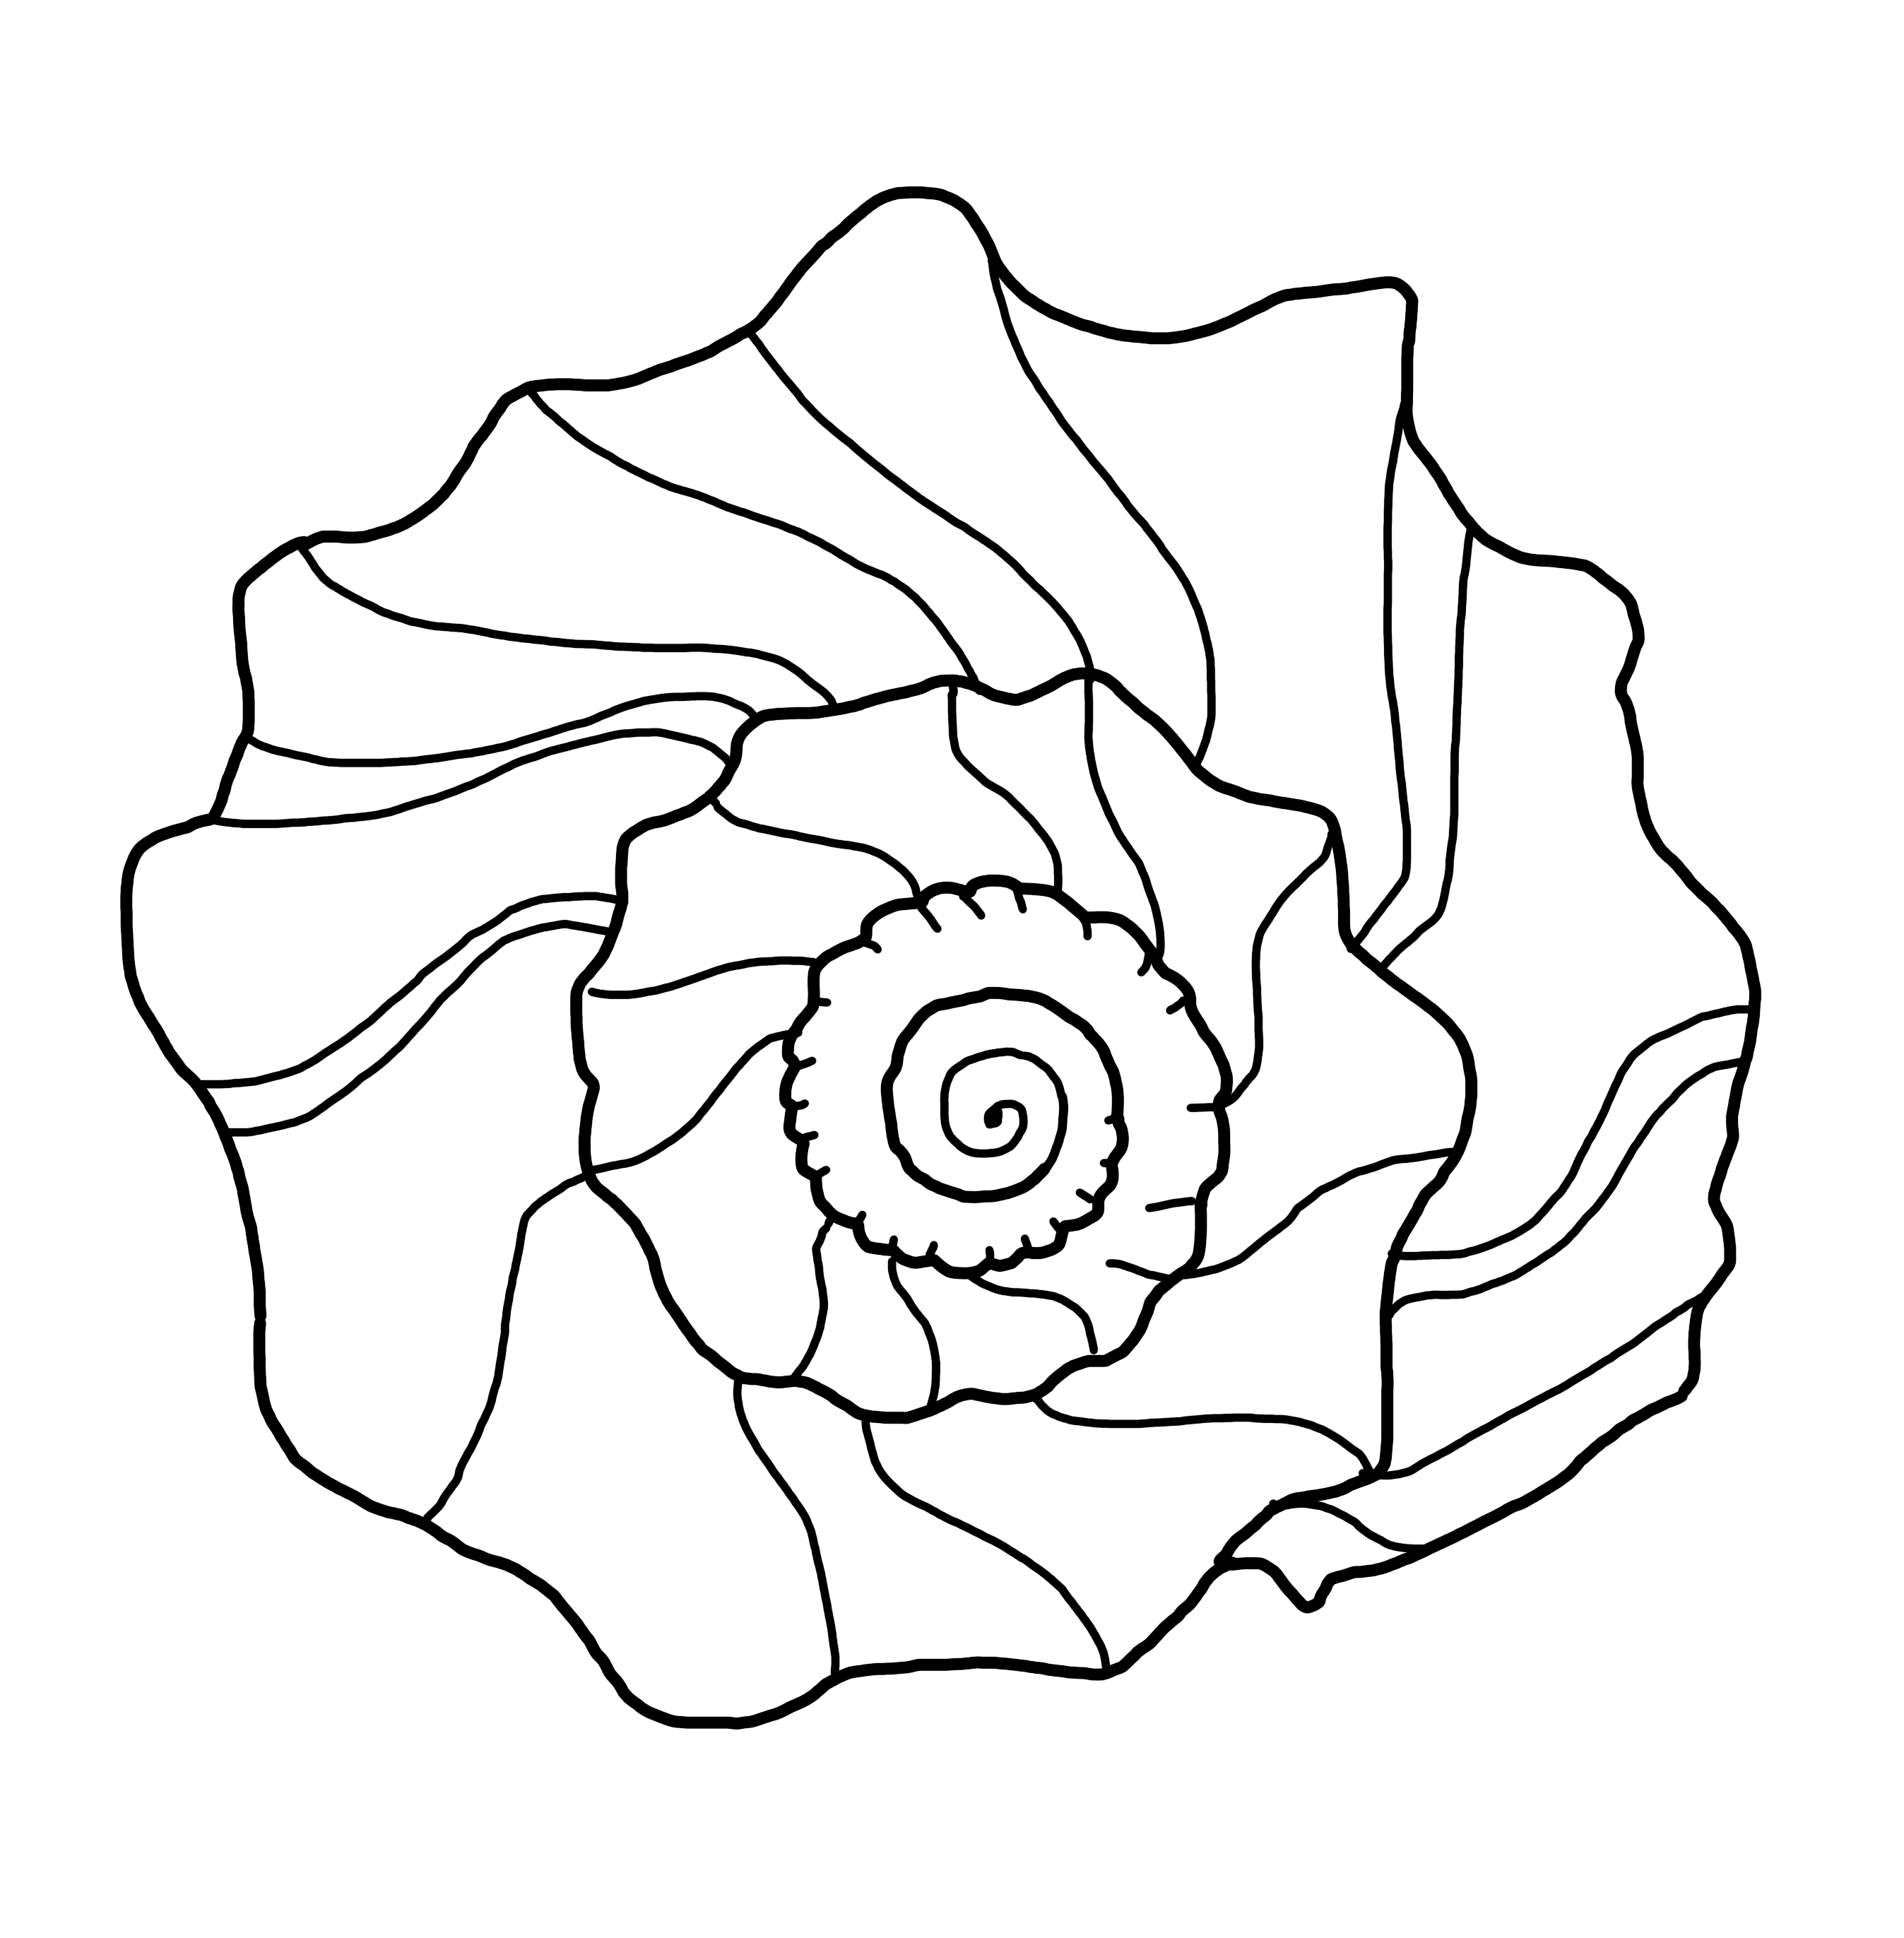 knobbed whelk coloring page